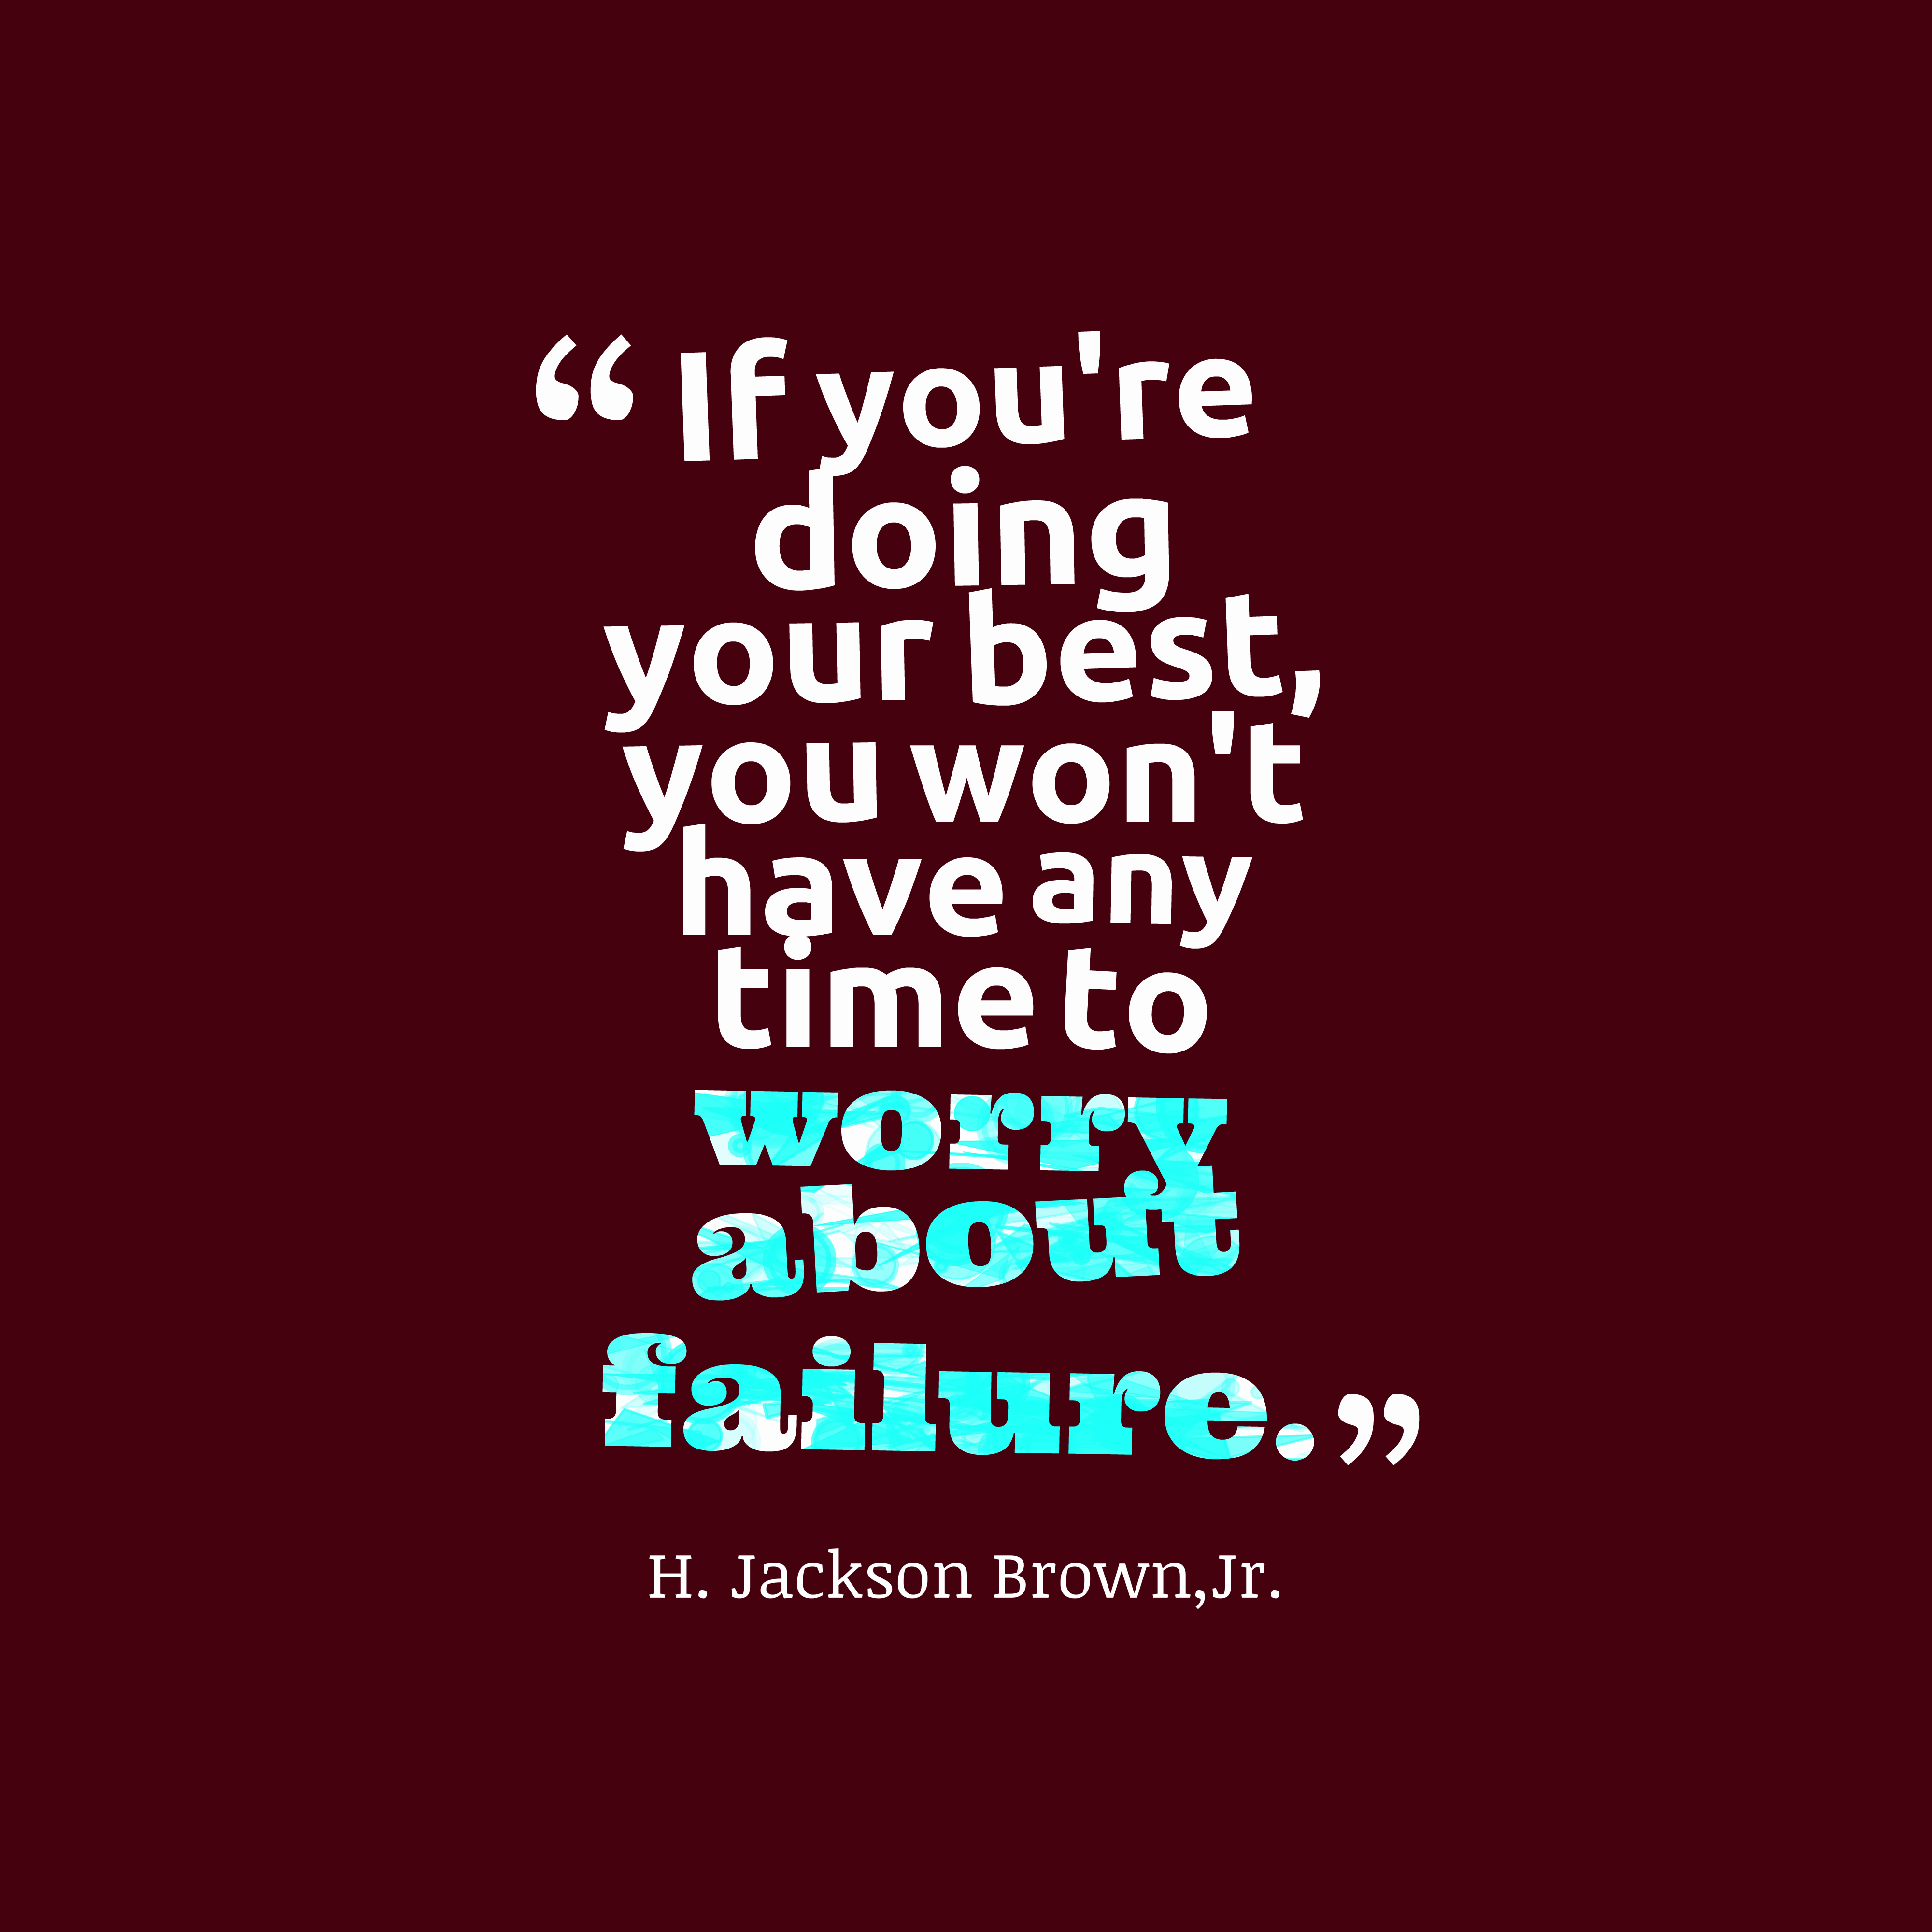 Quotes image of If you're doing your best, you won't have any time to worry about failure.